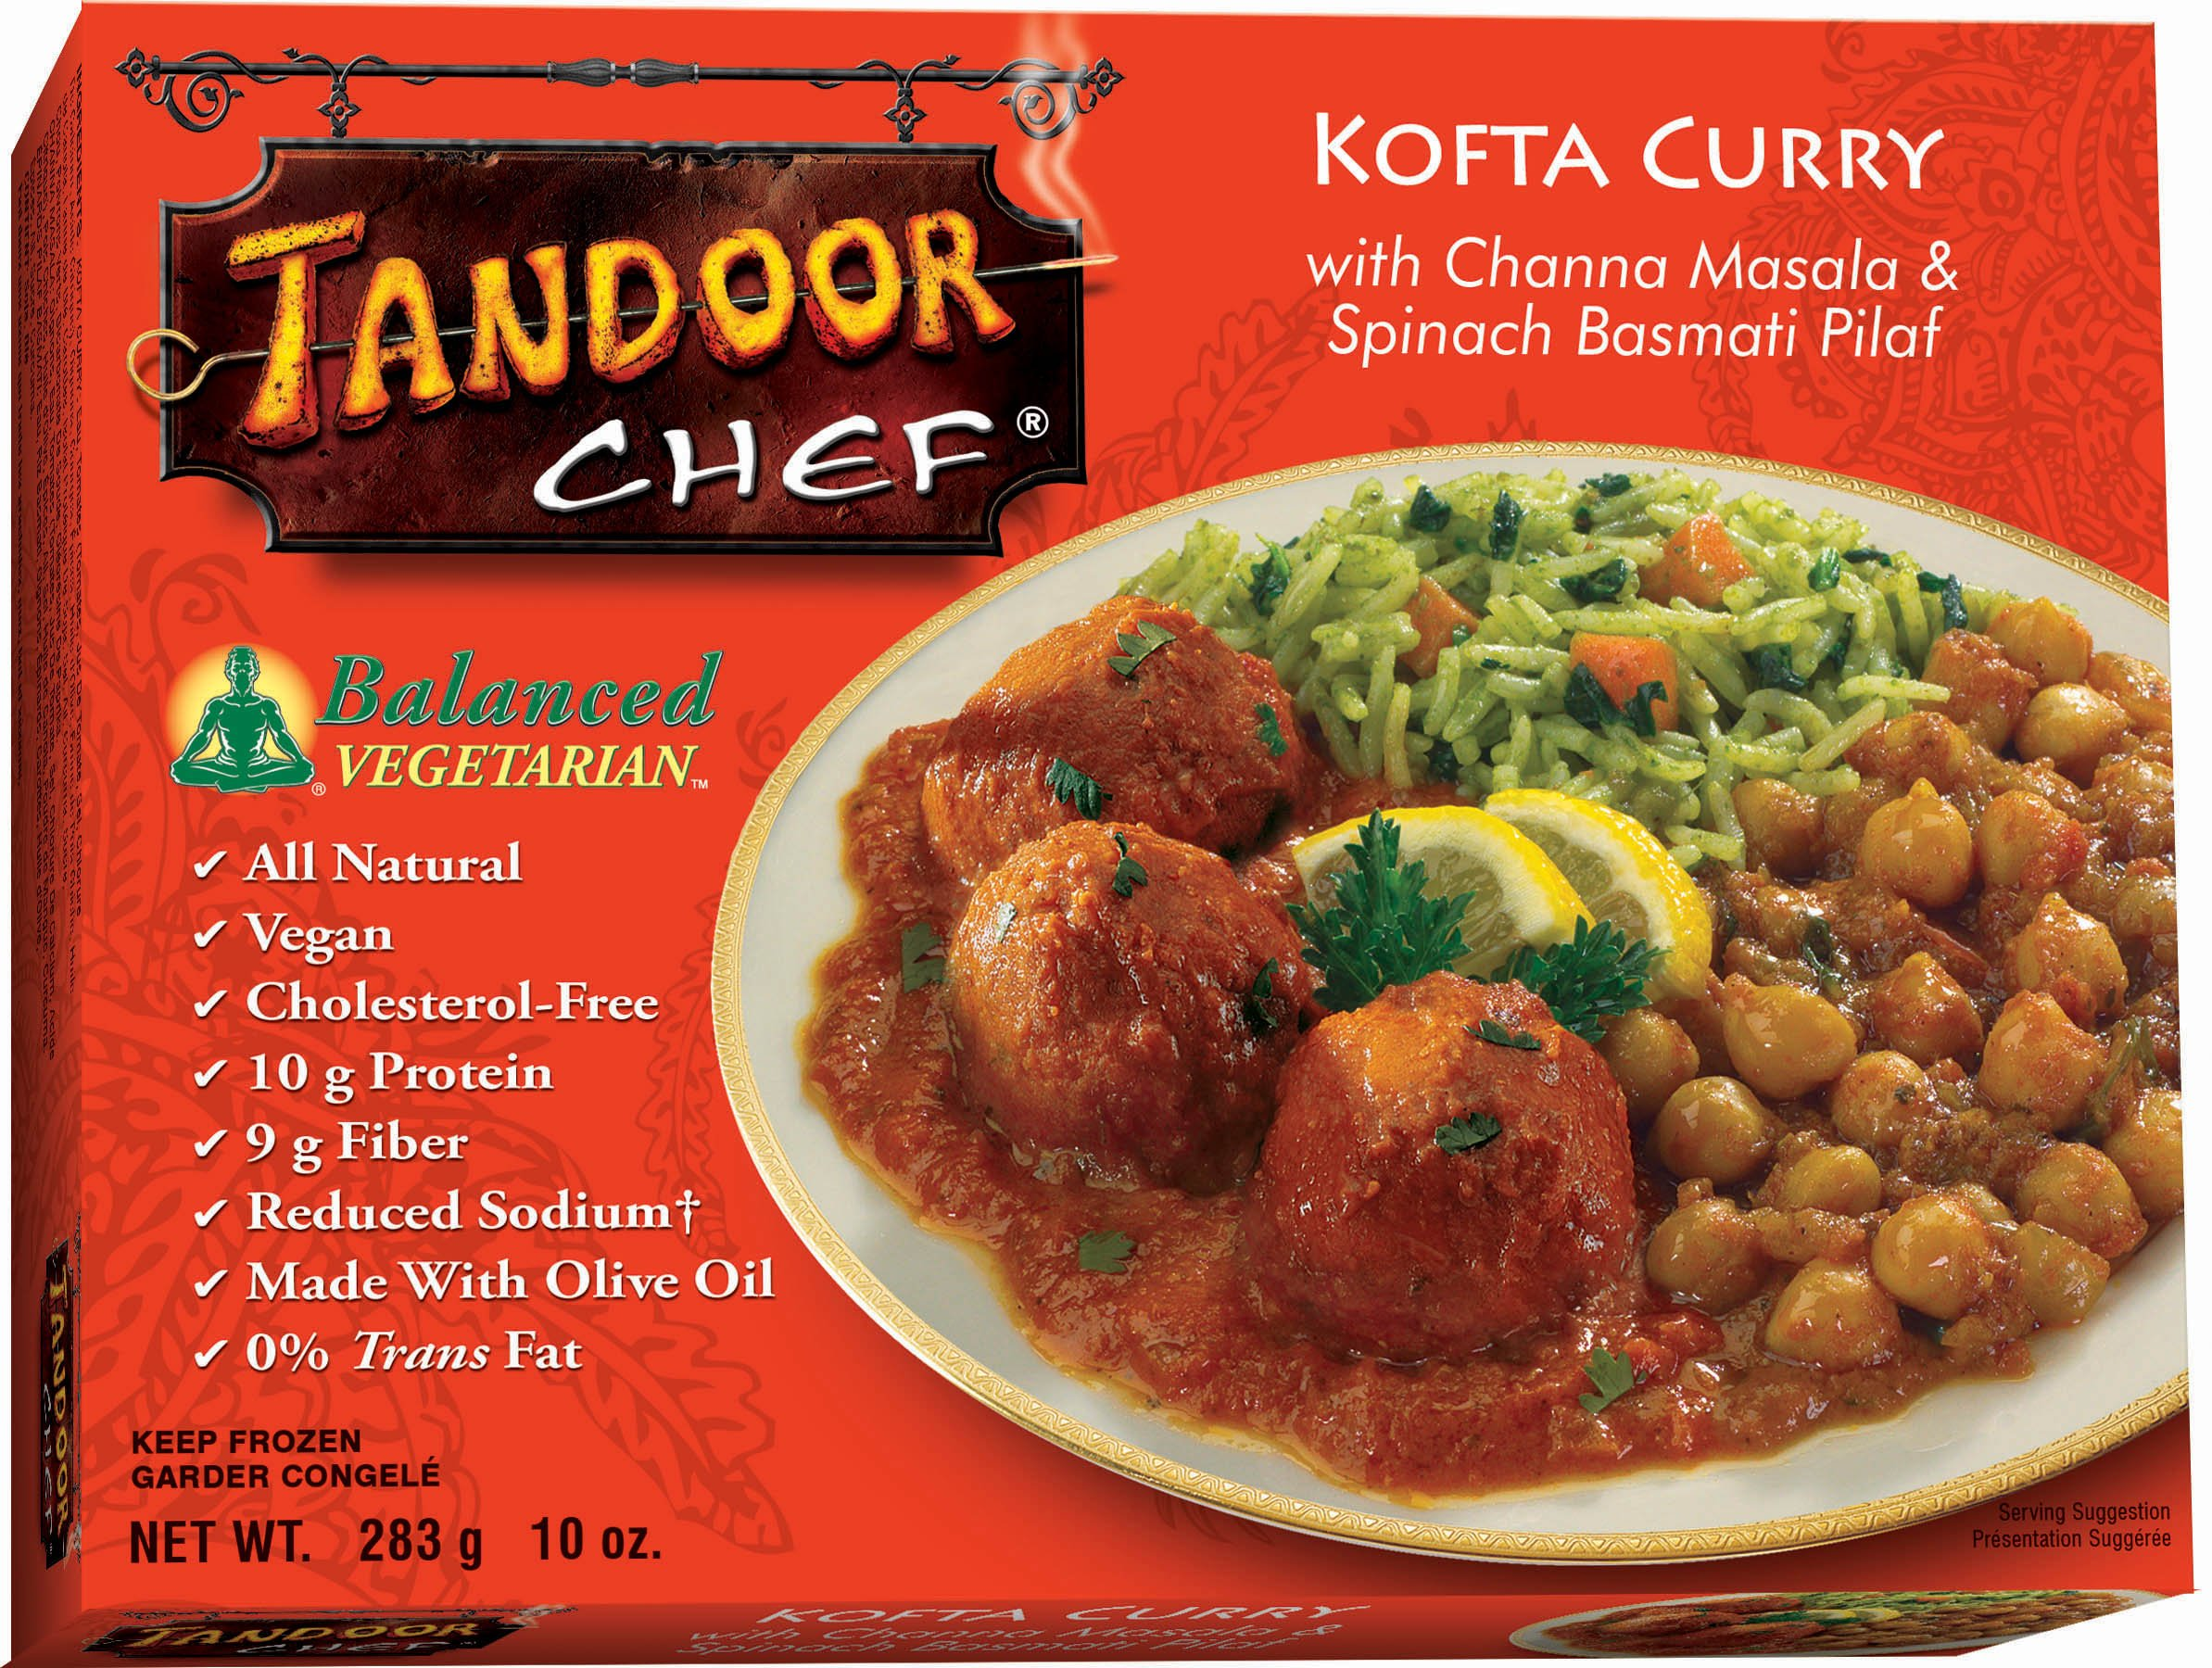 Tandoor Chef Kofta Curry with Channa Masala and Spinach Basmati Pilaf, 10-Ounce Boxes (Pack of 12)